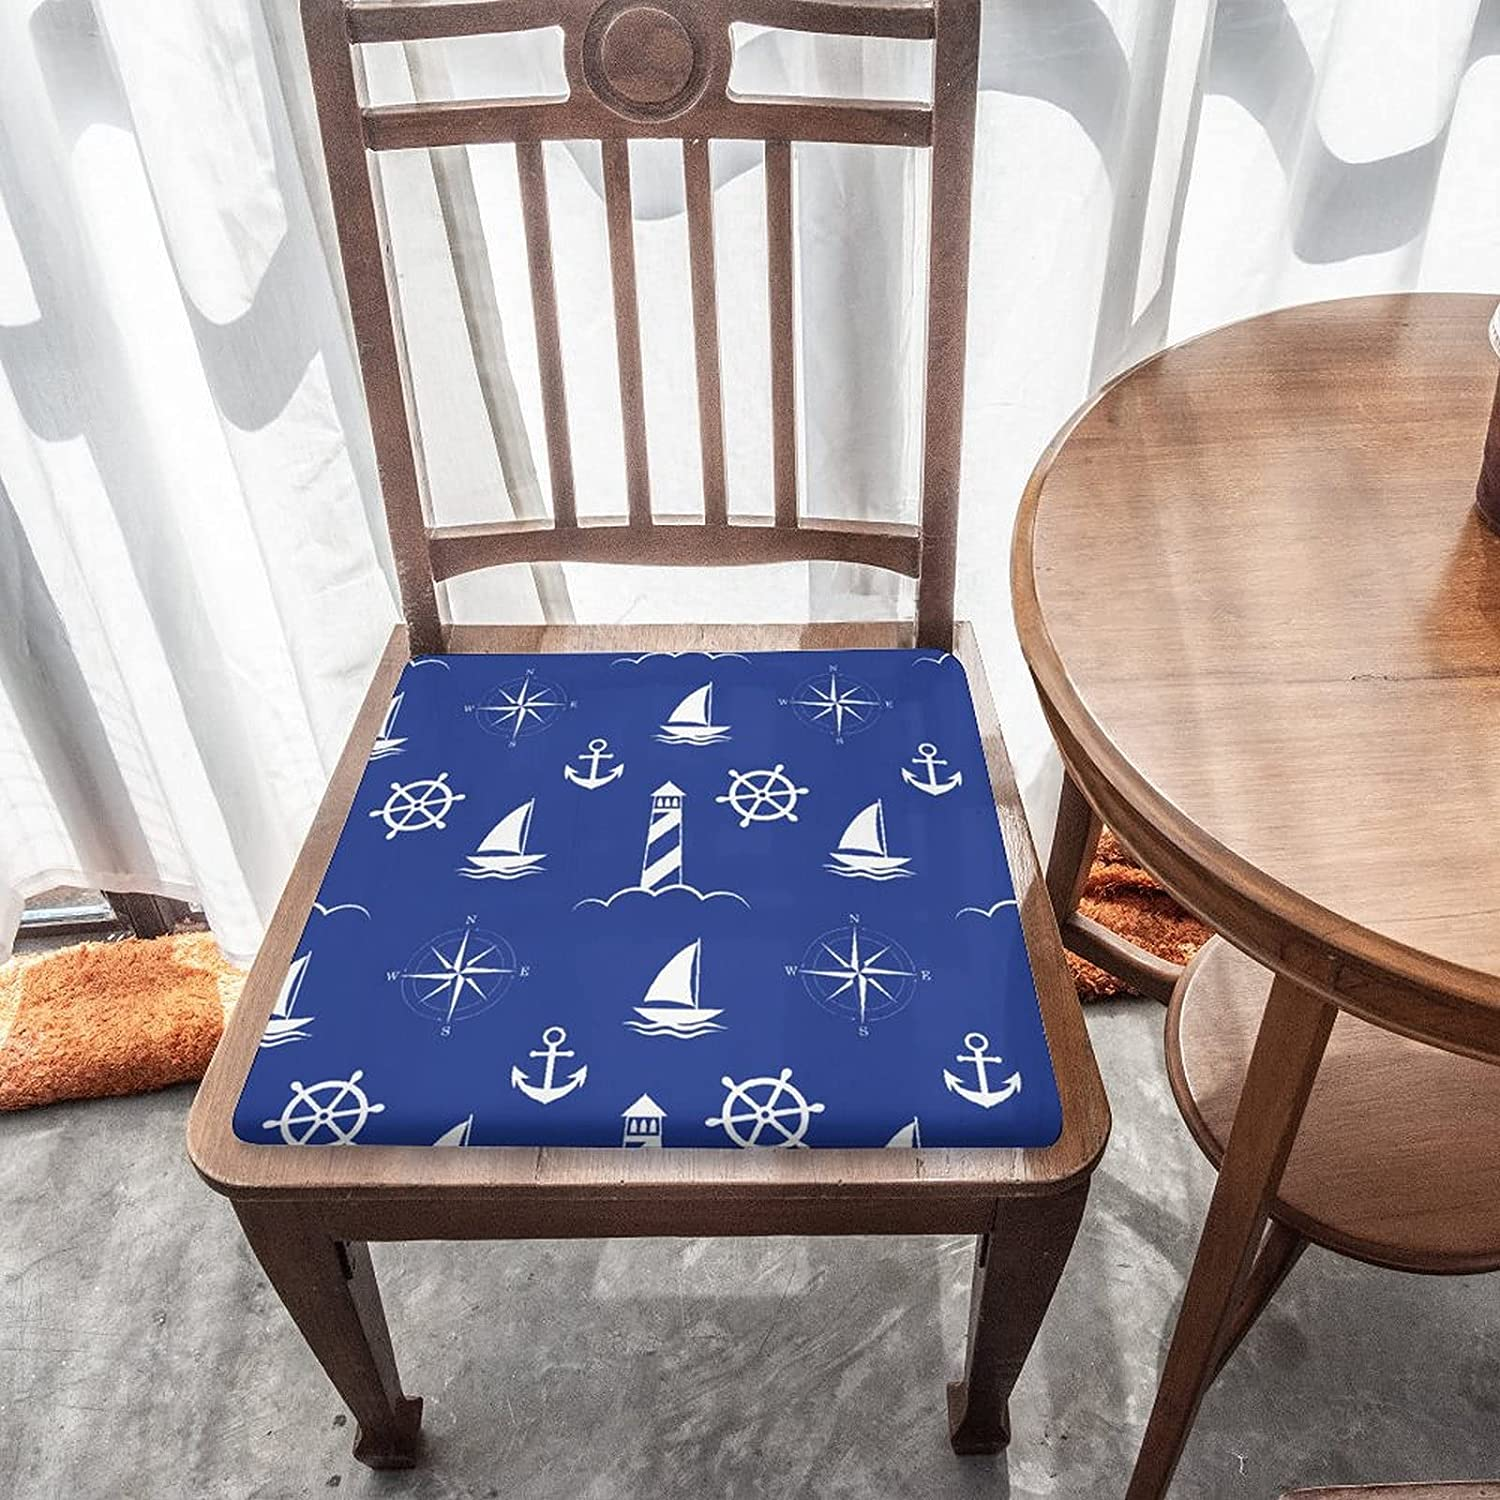 Sea Anchors Pattern Outdoor Kansas City Mall Indoor Removable Cheap bargain Seat Chair Cushion